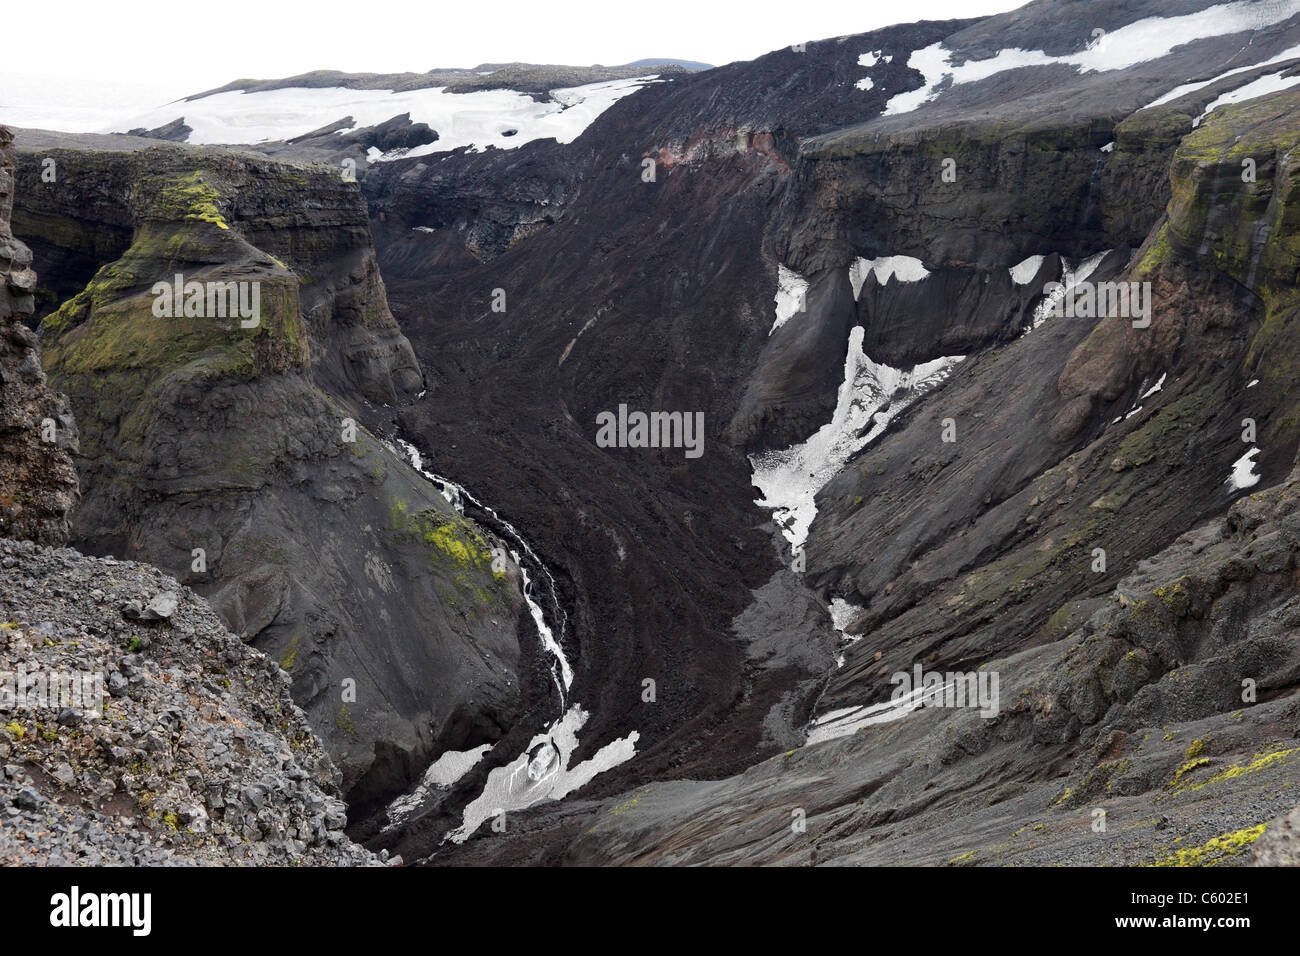 Lava Flow Flowing into the Hrunagil from the Initial Eruption Site of the Eyjafjallajokull Volcano, Fimmvorouhals - Stock Image